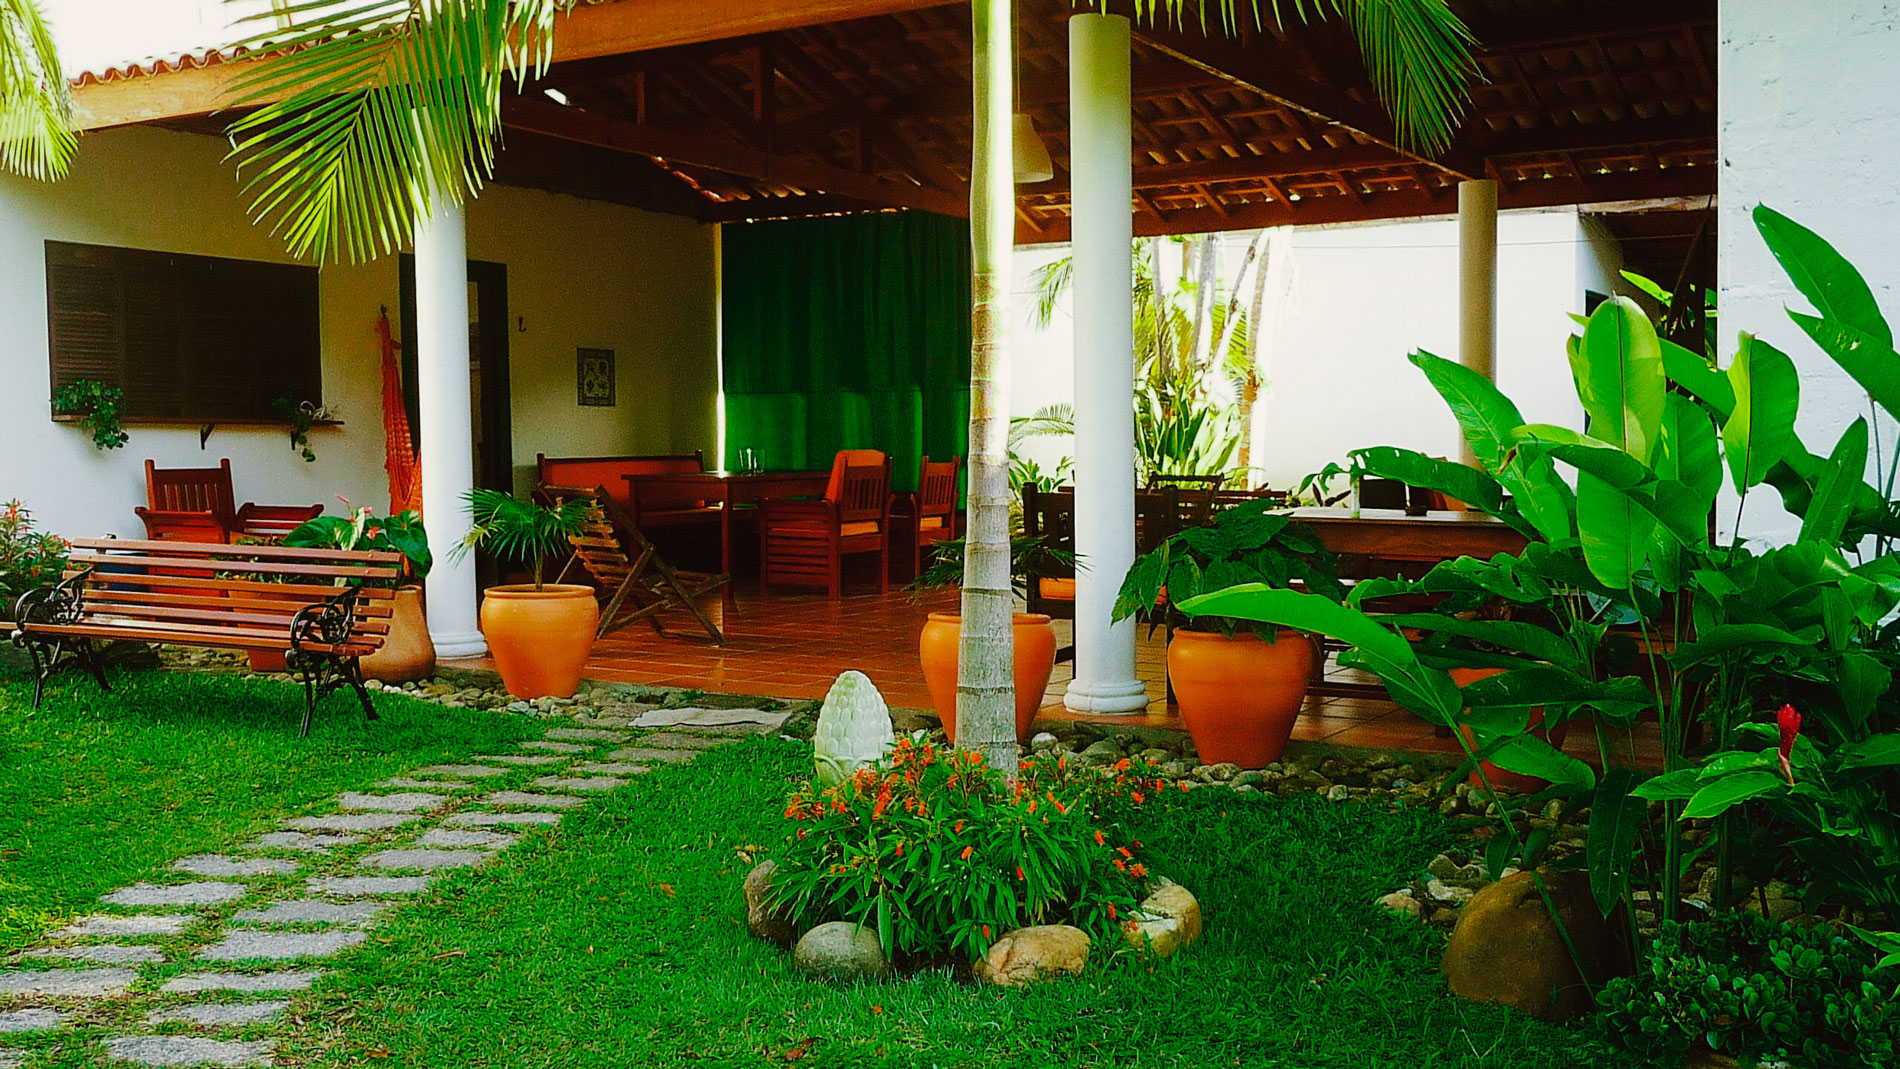 Salve Floresta's terrace